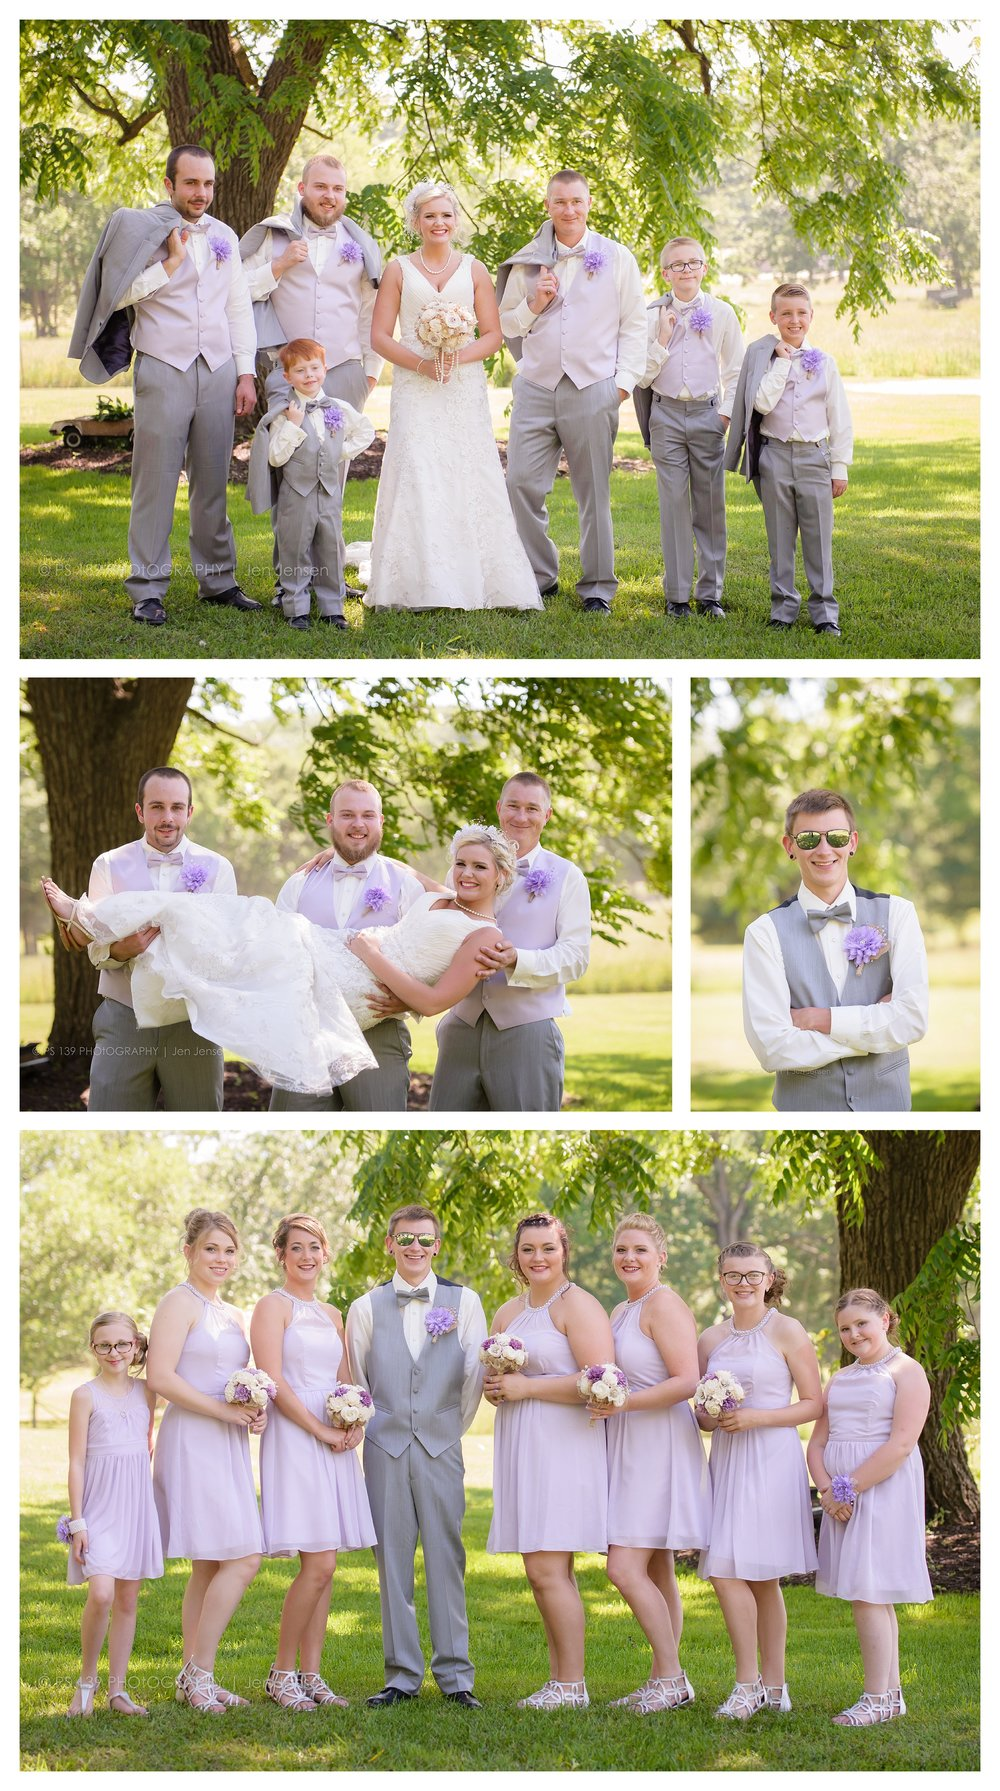 oregon Illinois oak lane farm wisconsin wedding photographer bayfield wi ps 139 photography jen jensen_0247.jpg